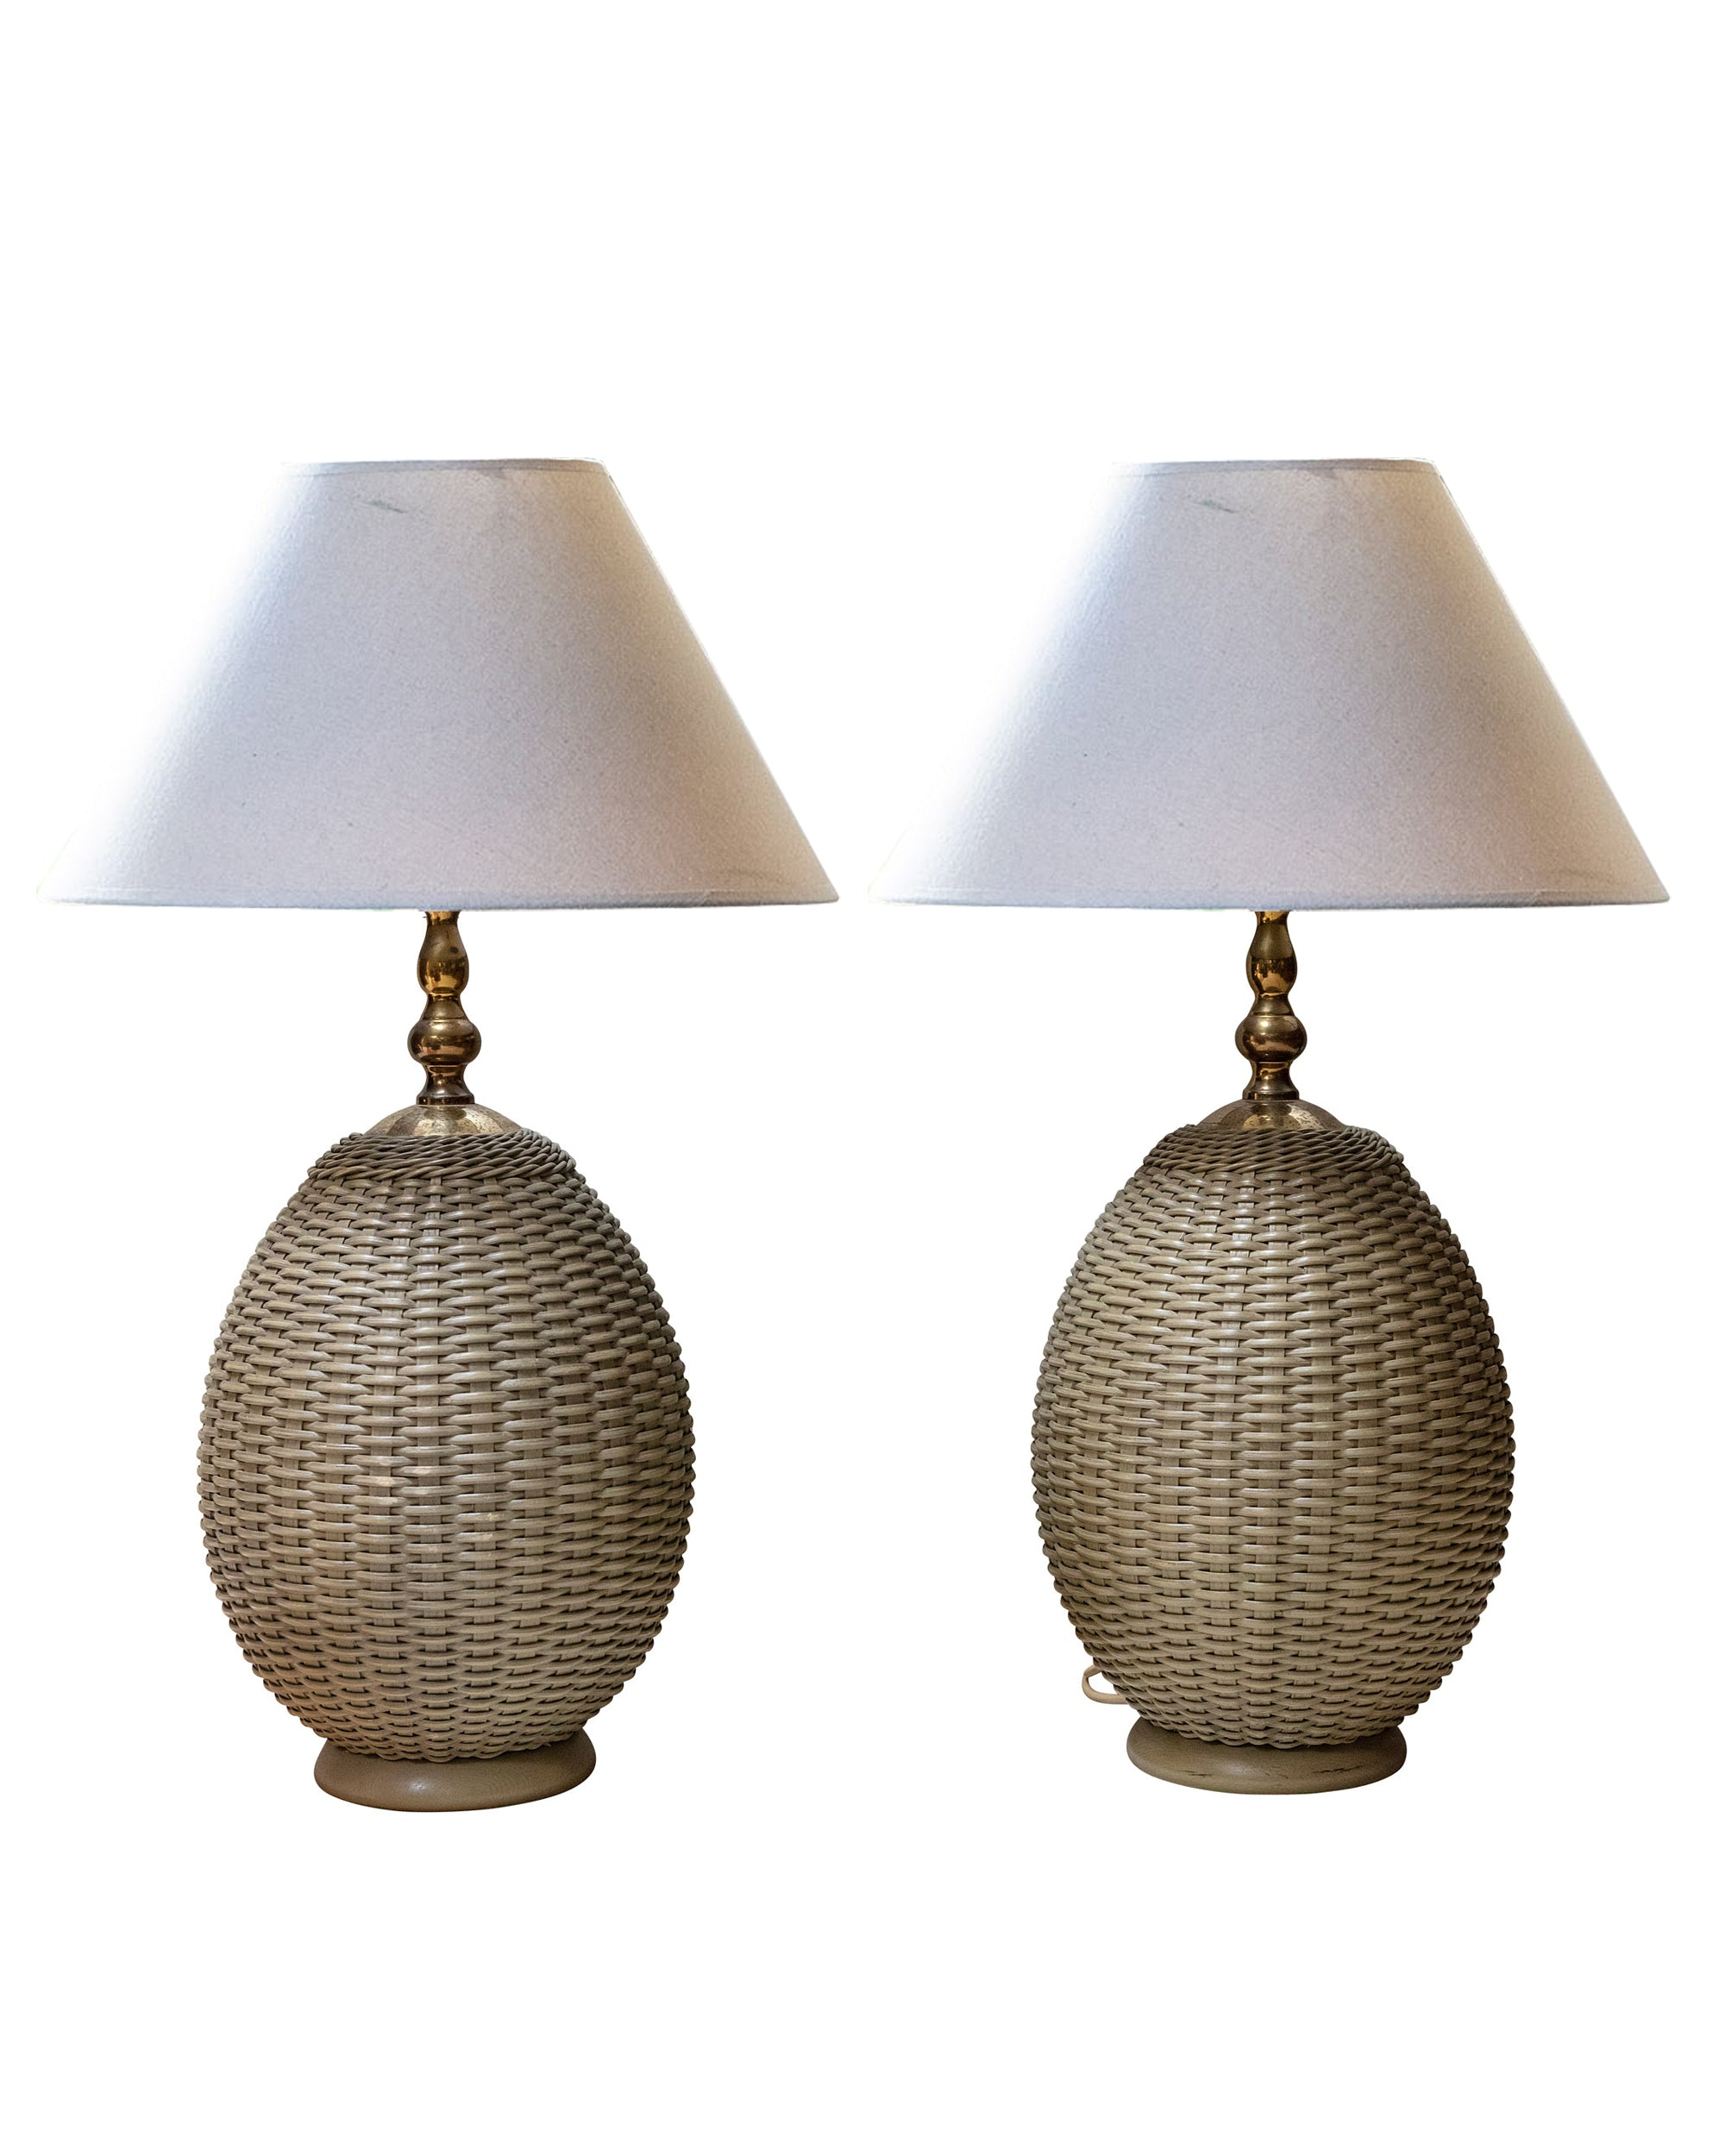 Pair of gray wicker lamps